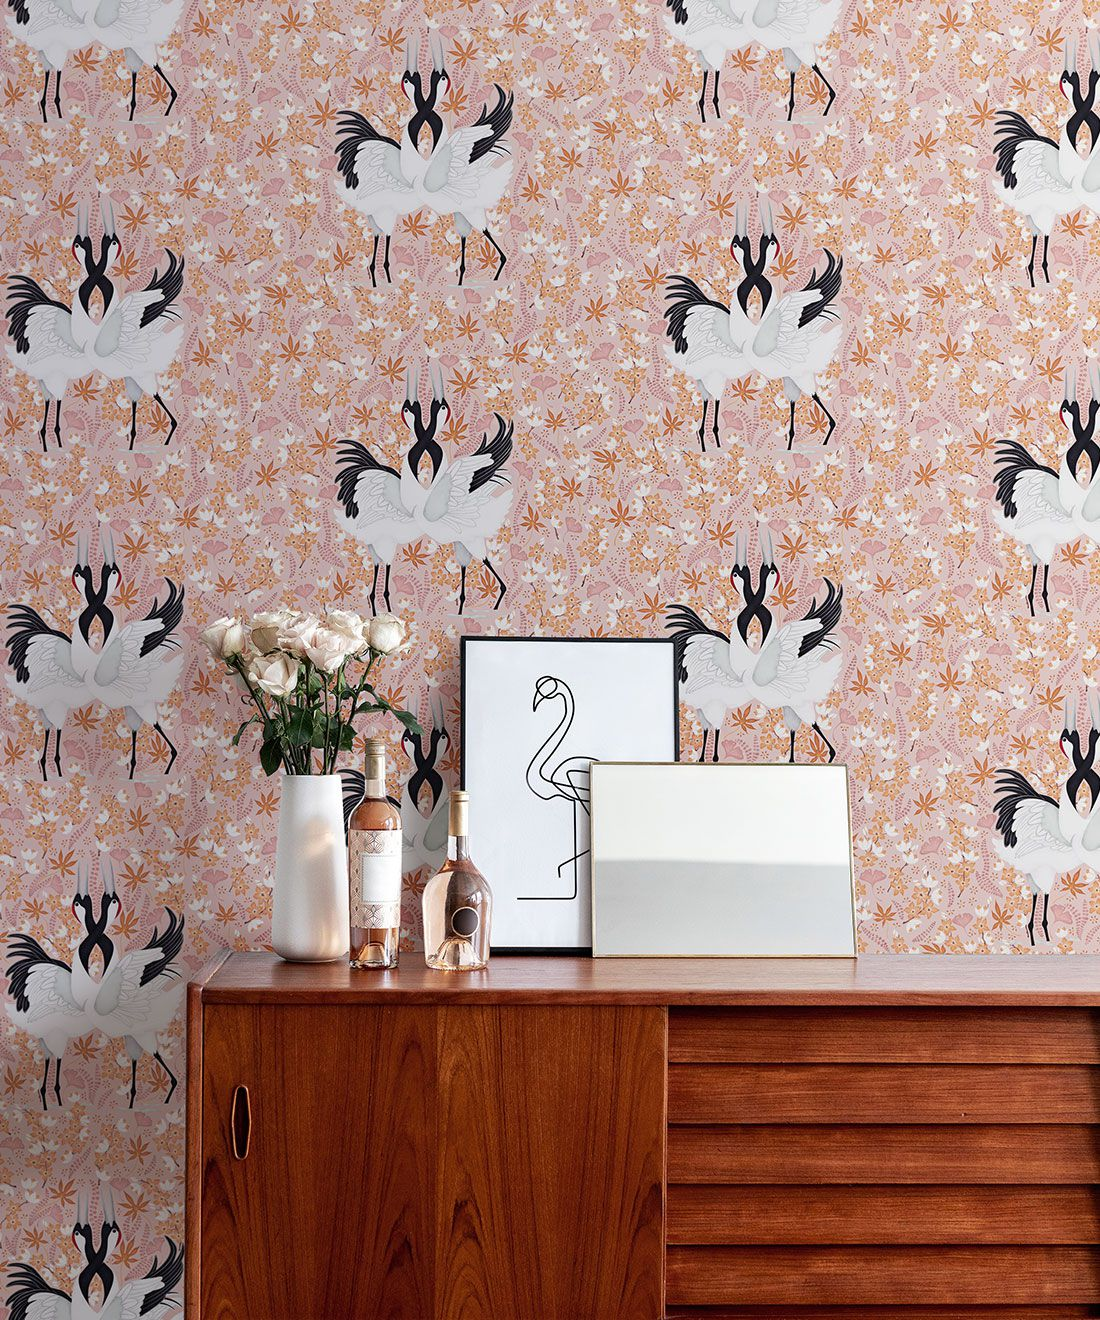 Japanese Cranes Wallpaper • Bird Wallpaper • Pink Wallpaper Insitu